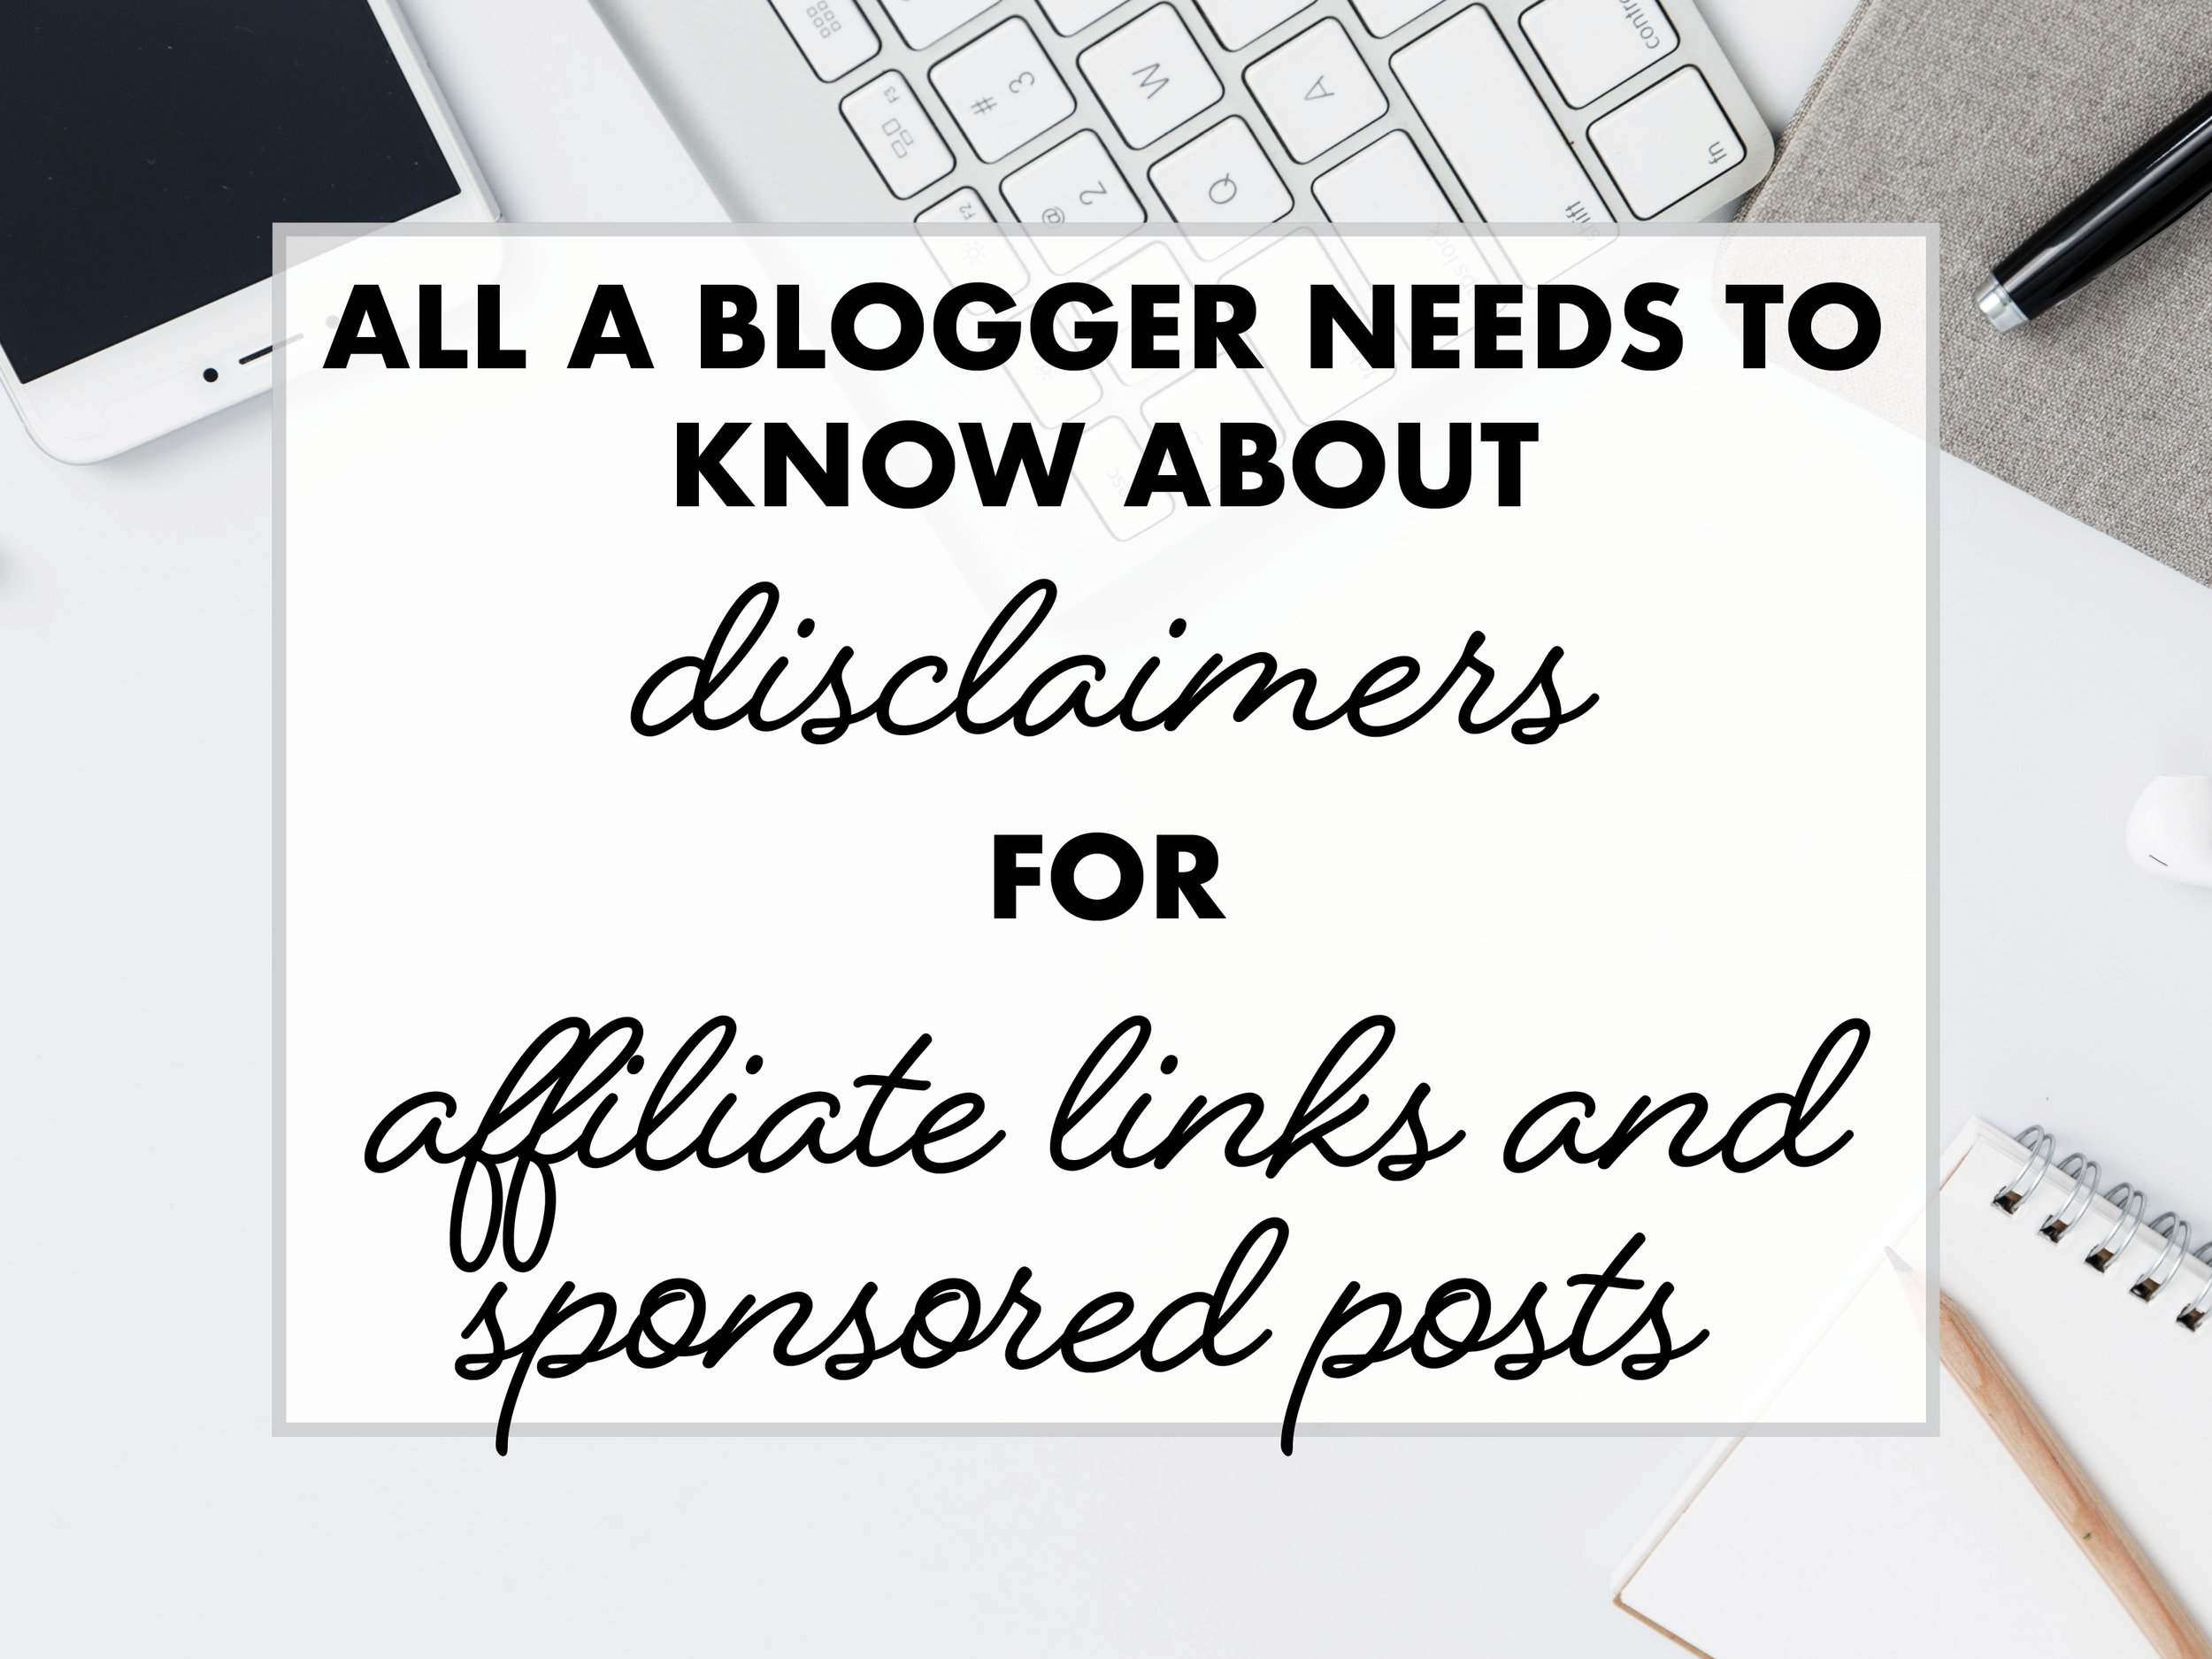 All A Blogger Needs To Know About Disclaimers for Affiliate Links & Sponsored Posts biaalvarezdesign